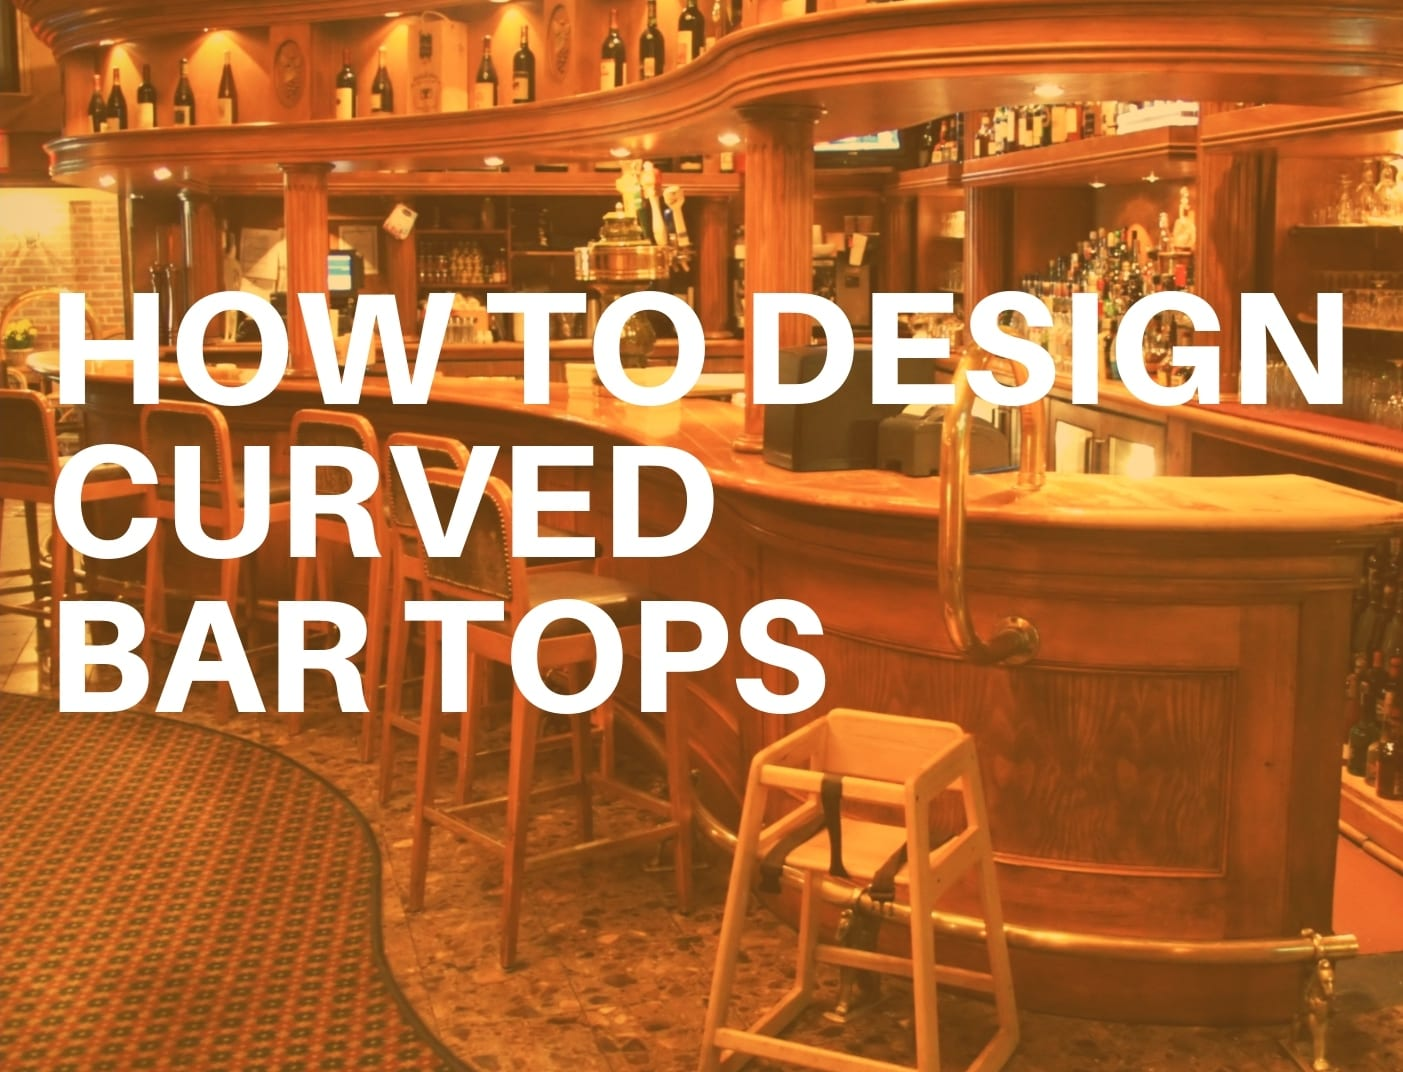 HOW-TO-DESIGN-CURVED-BAR-TOPS-TN